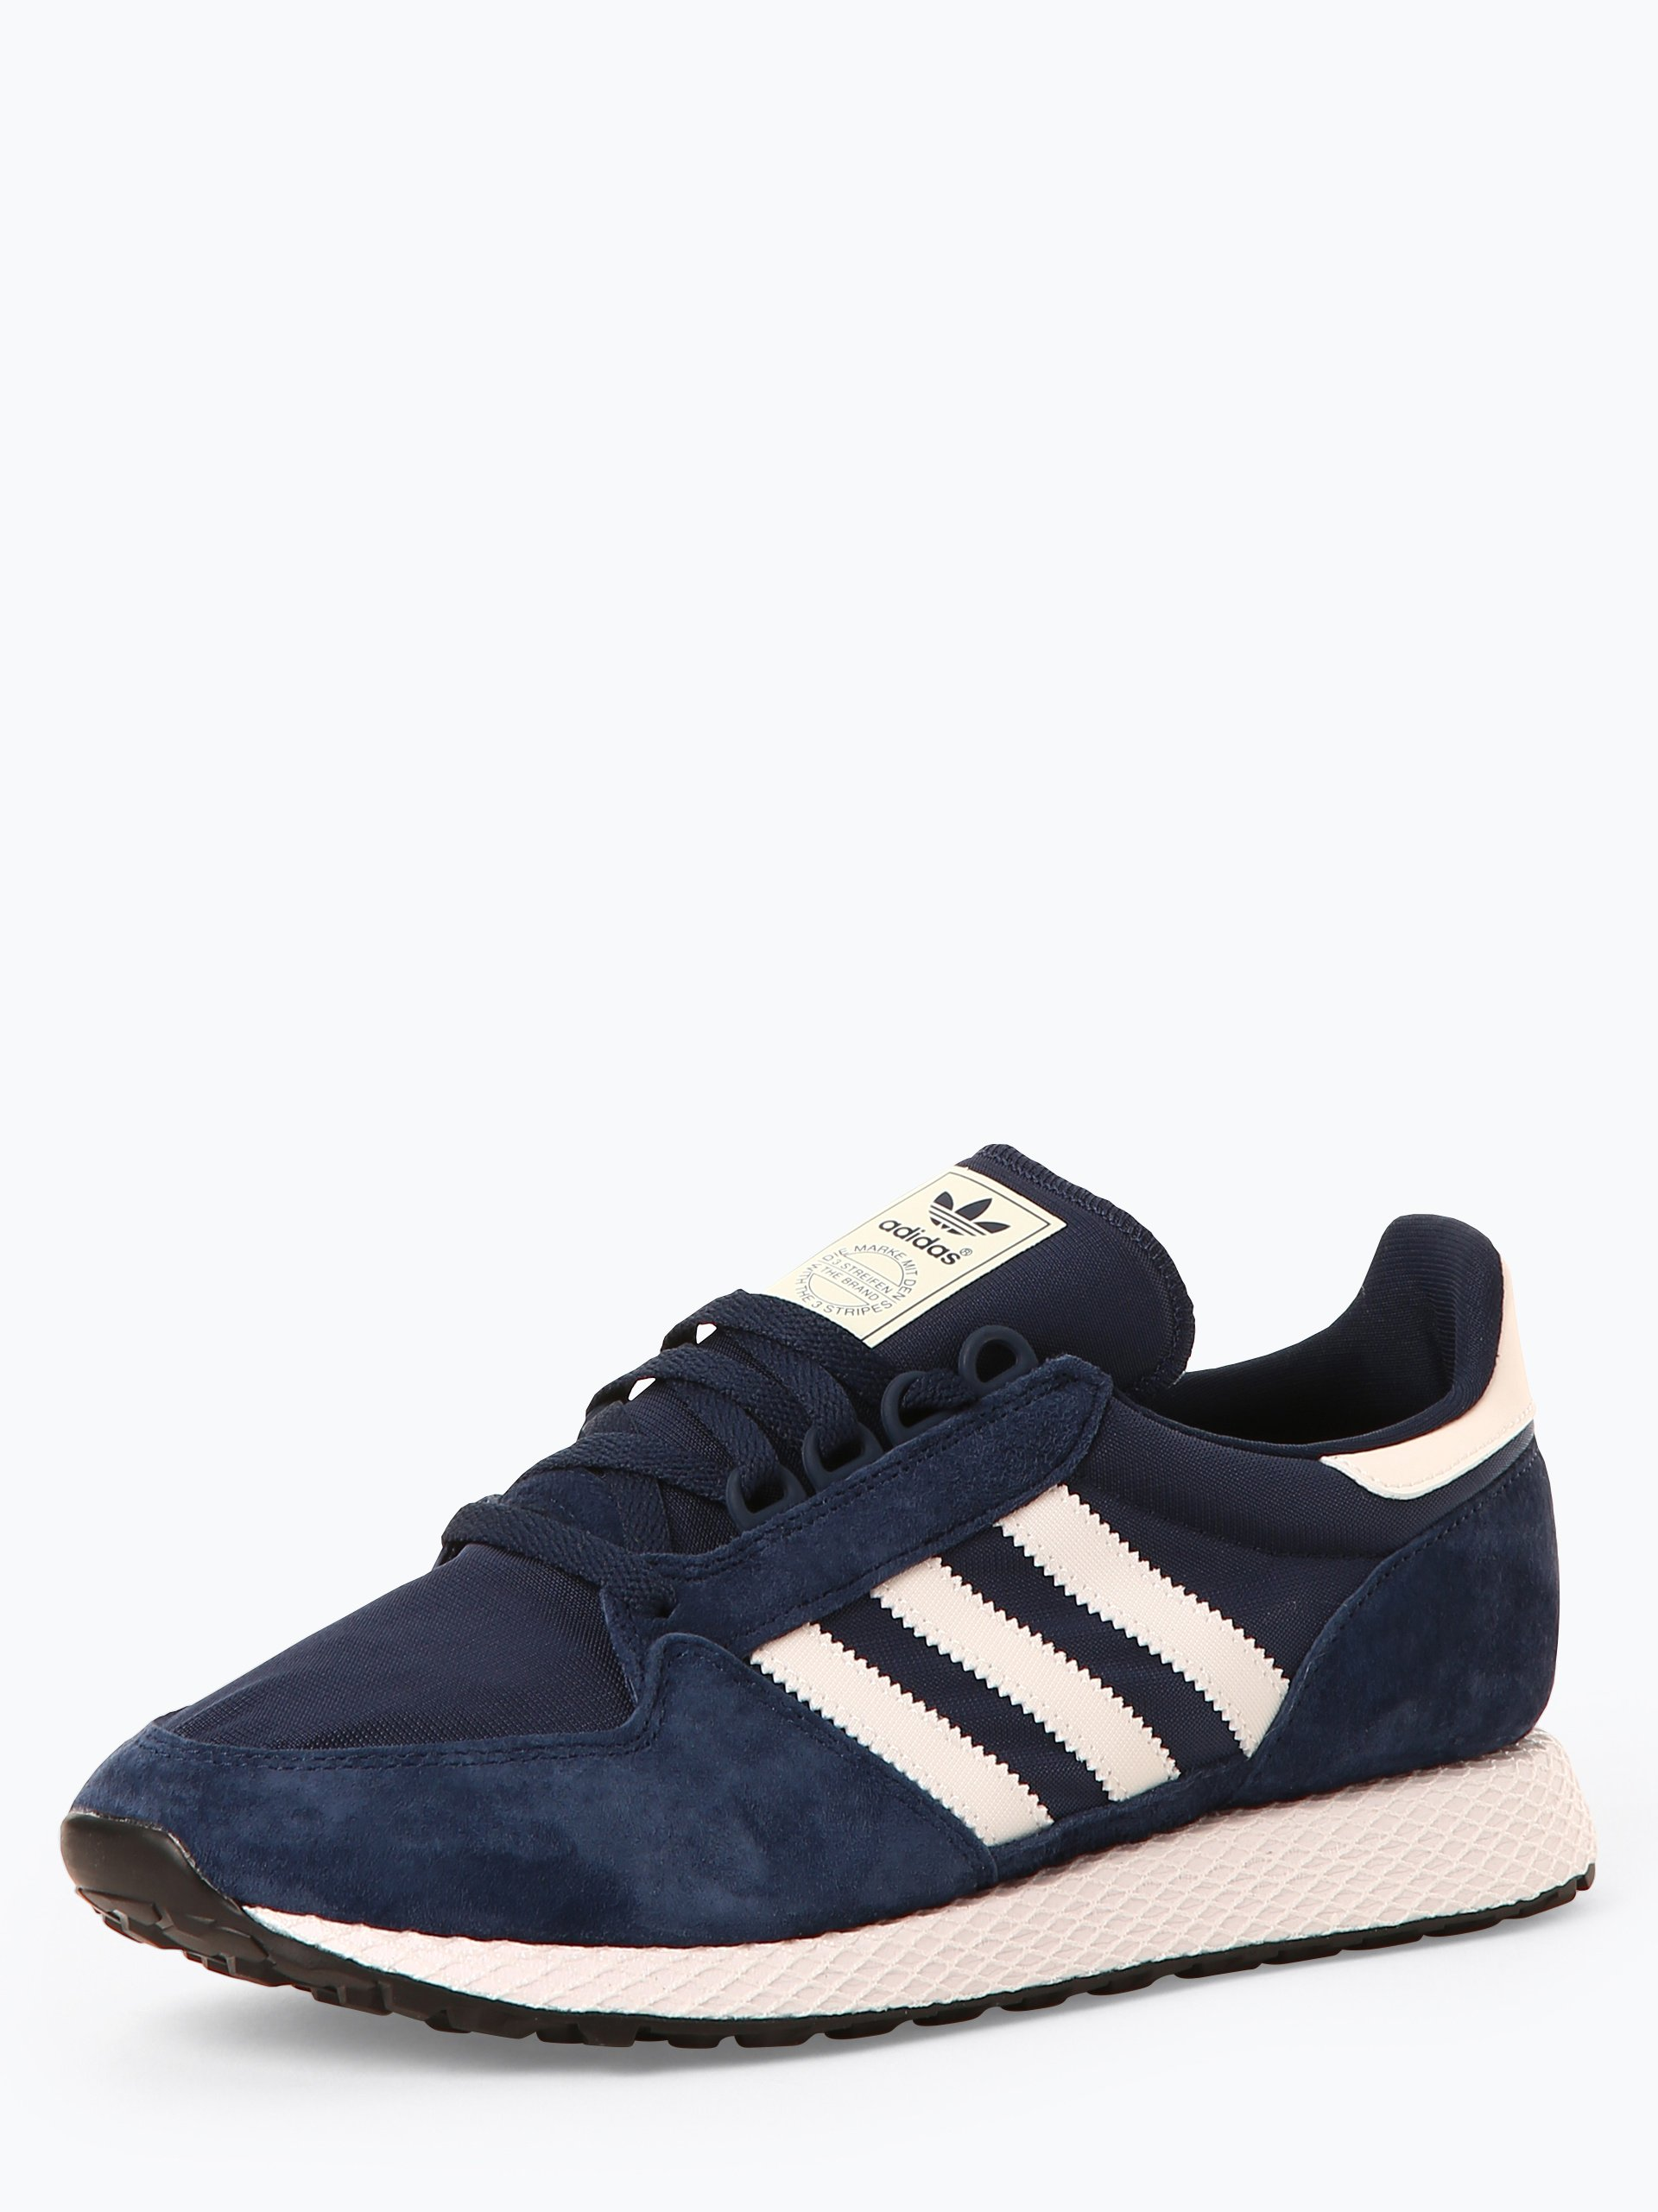 adidas Originals Herren Sneaker - Forest Grove